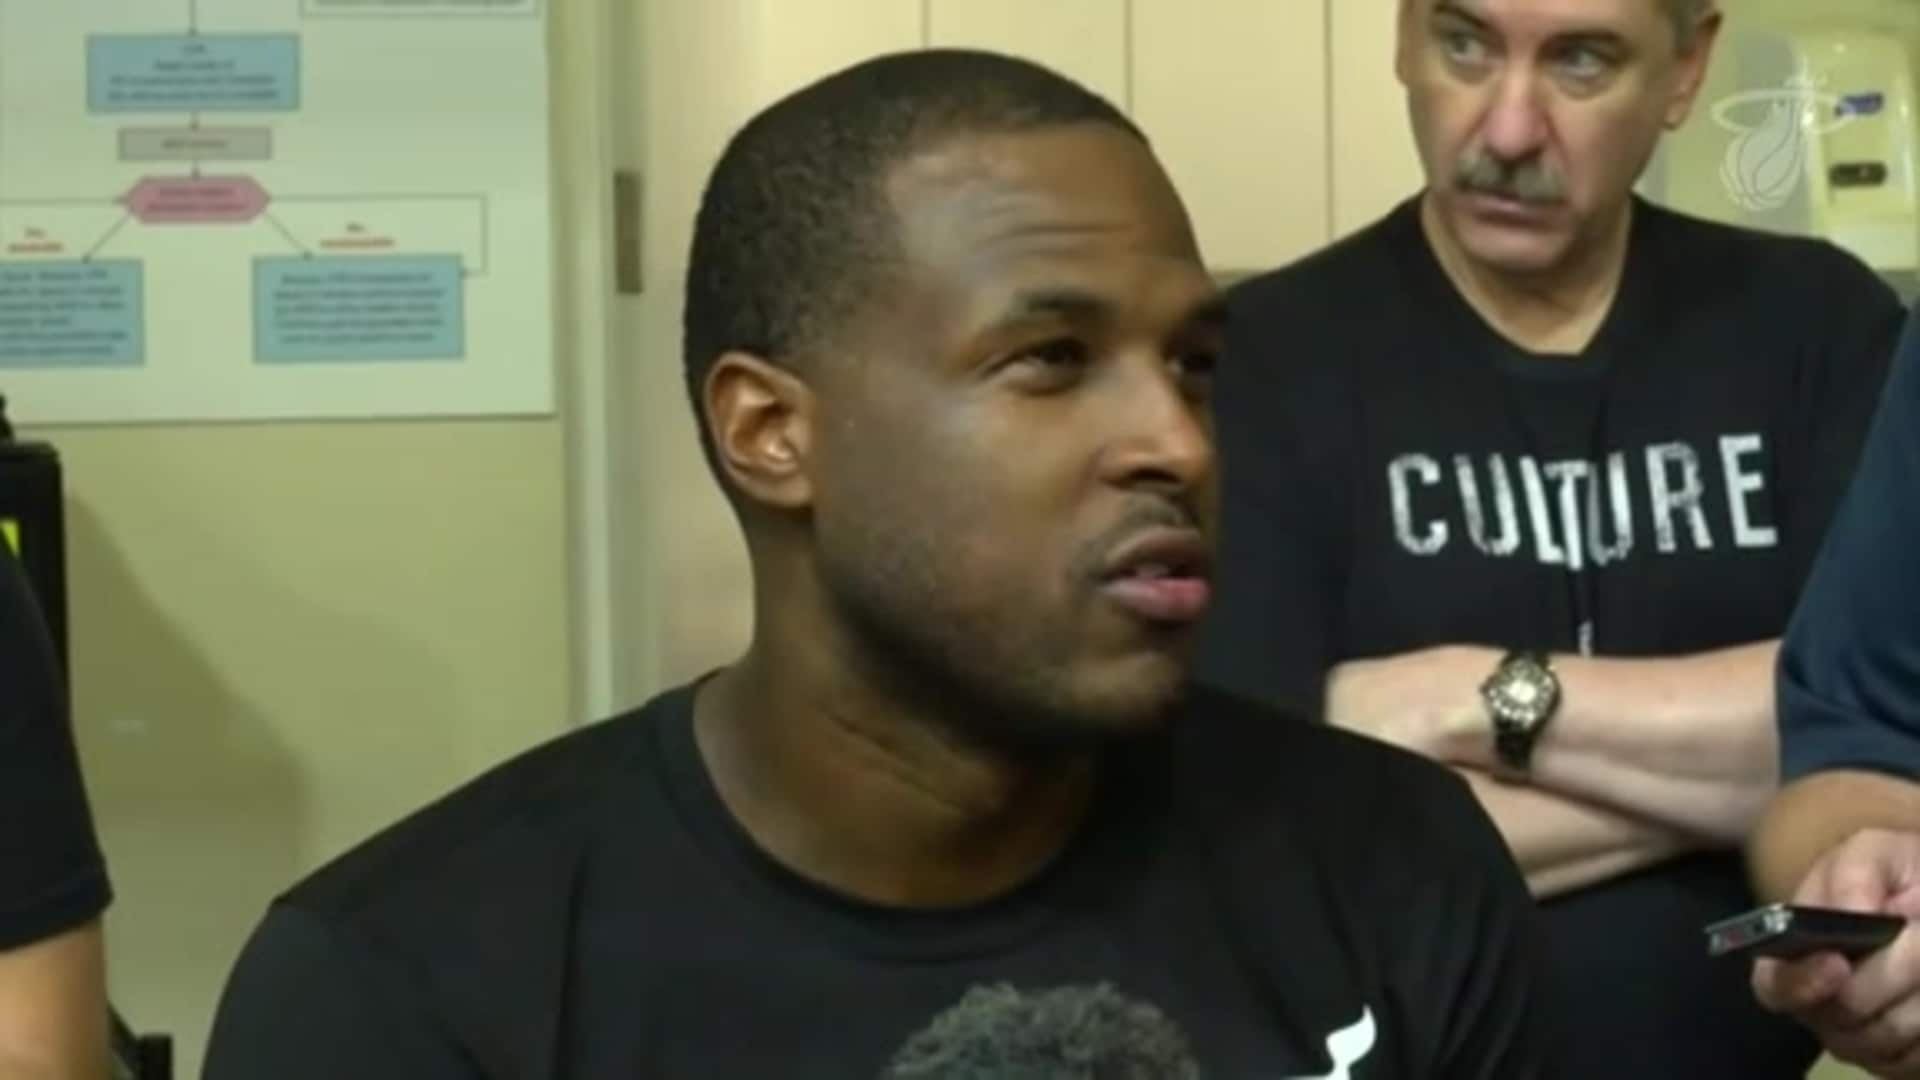 Waiters On His Return To Action and What's Next